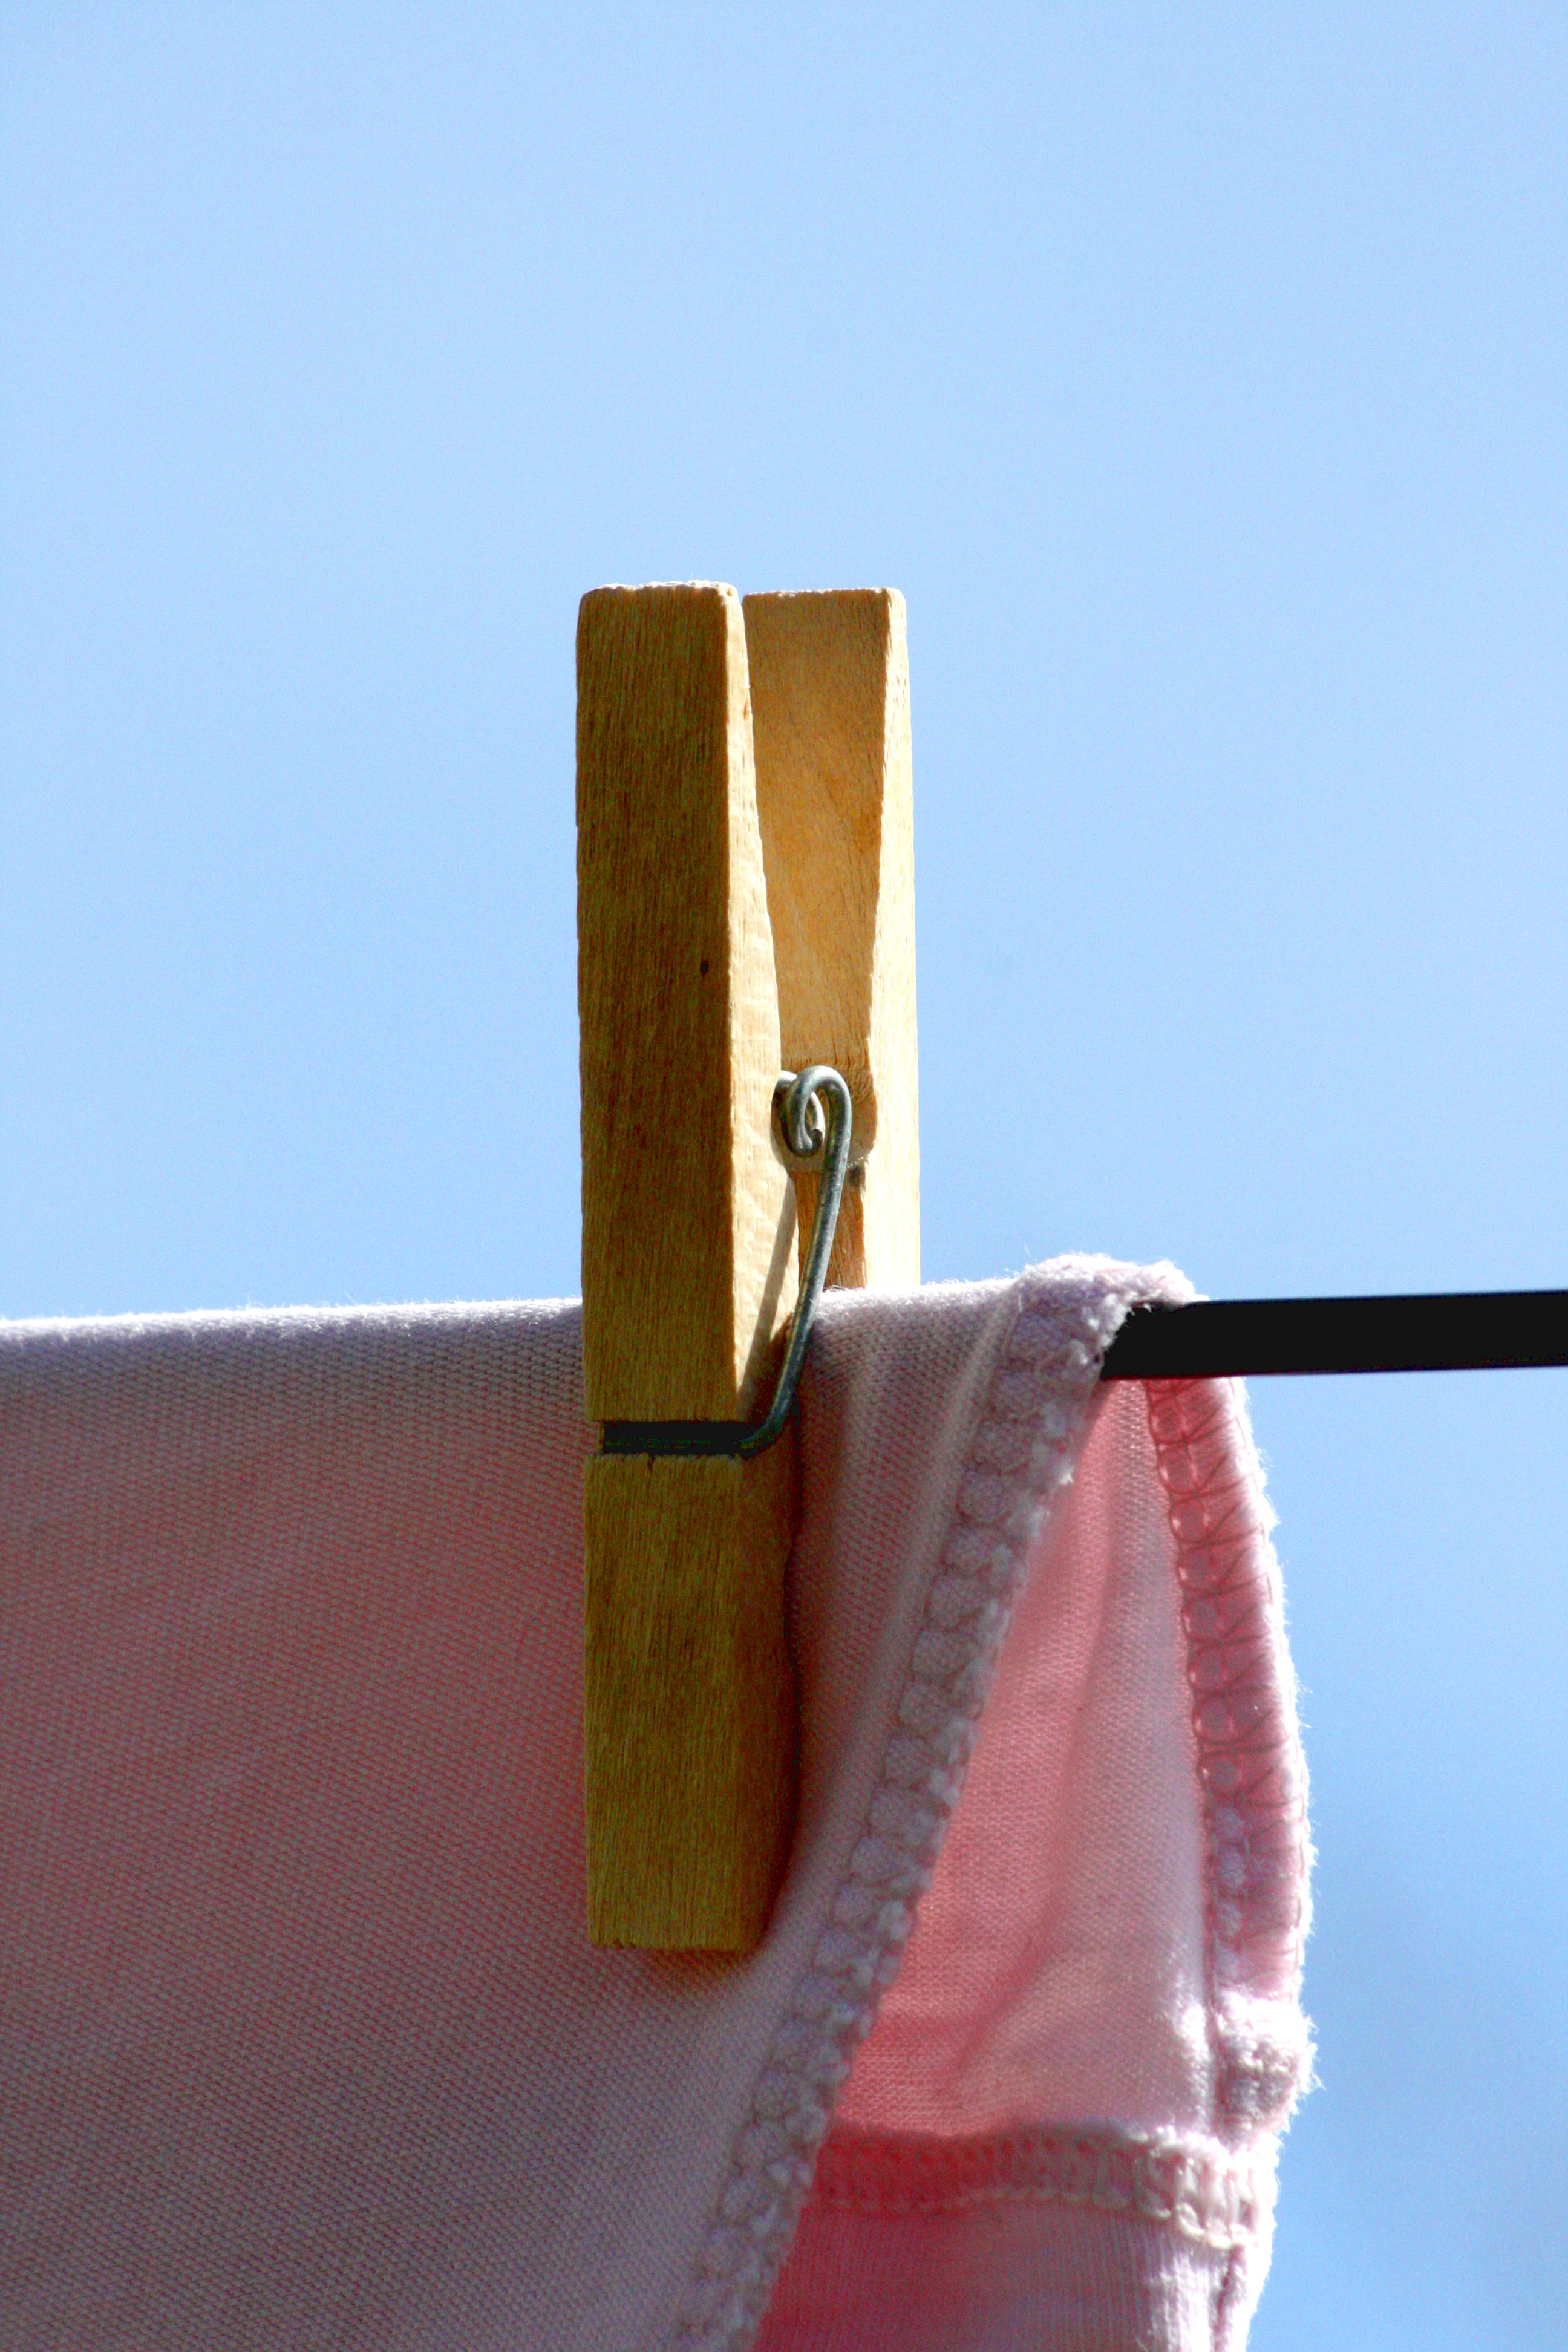 Wooden Clothespin Holding Drying Laundry On Clothesline